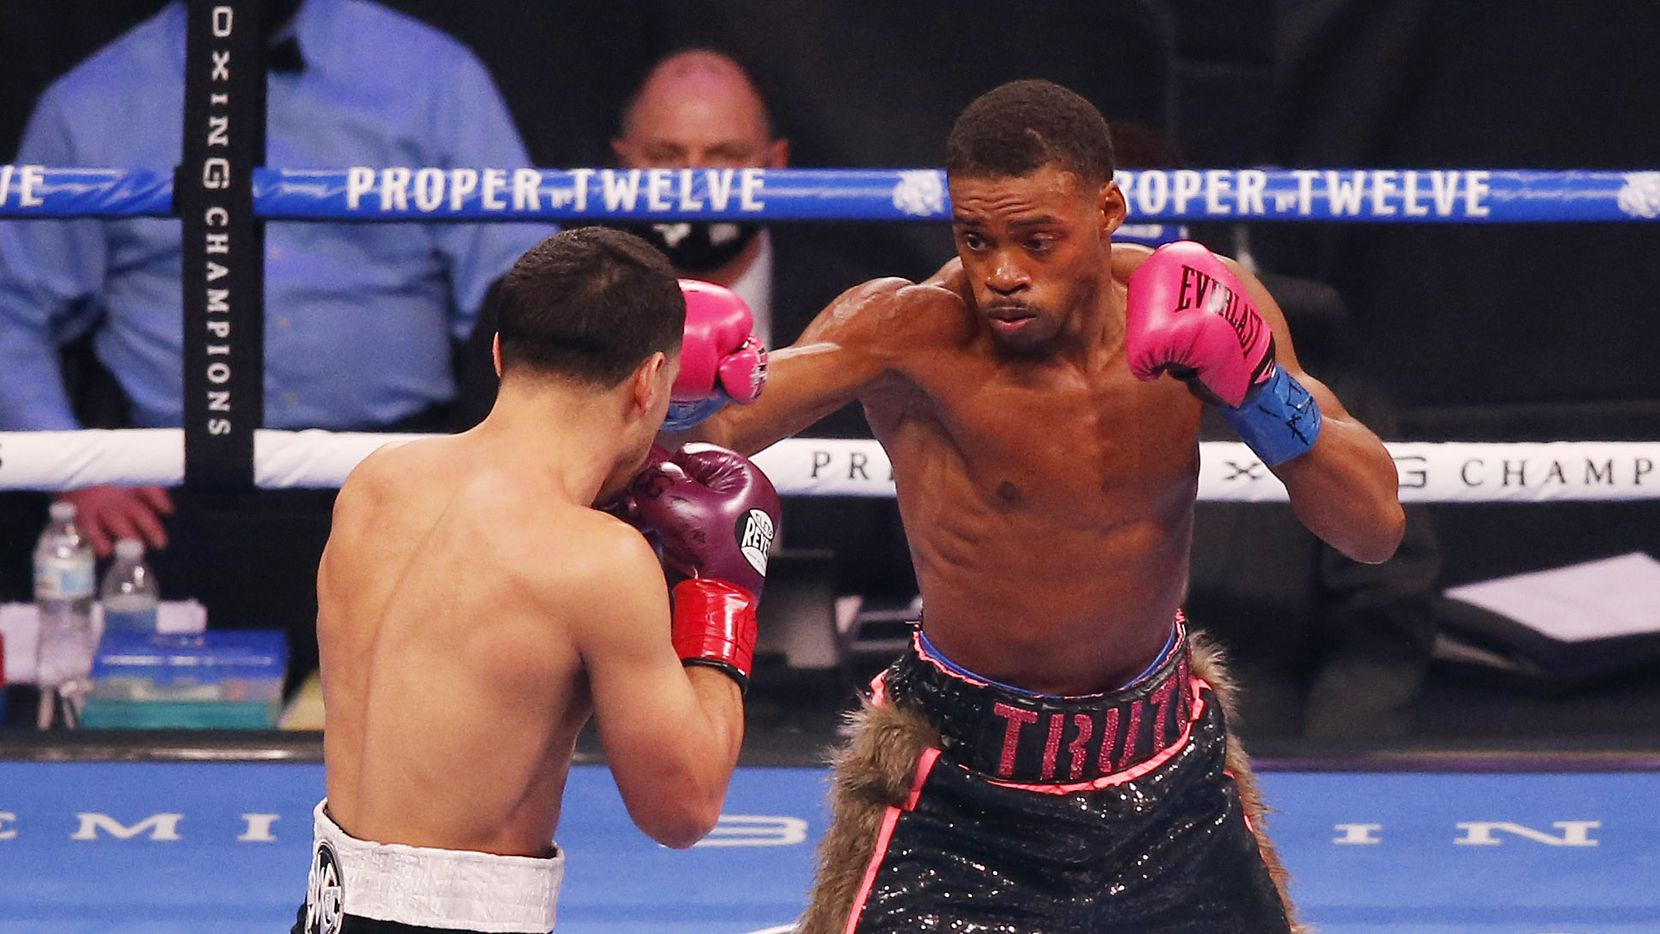 Errol Spence, Jr. and Danny García fight during the first round of a WBC & IBF World Welterweight Championship boxing match at AT&T Stadium on Saturday, December 5, 2020 in Arlington, Texas. (Vernon Bryant/The Dallas Morning News)